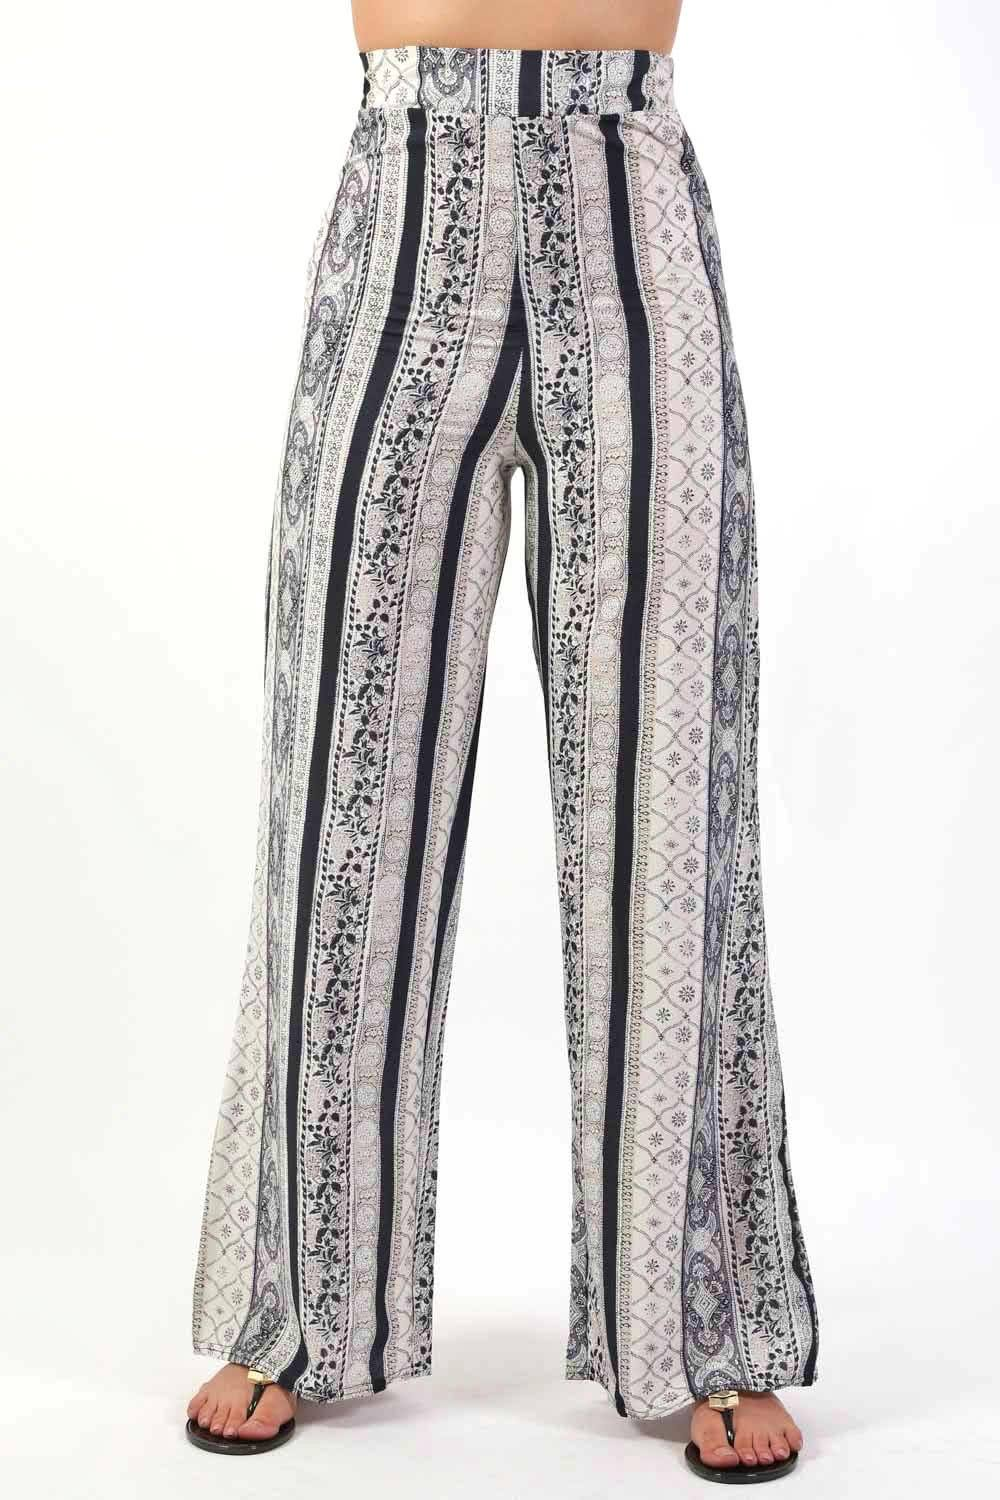 Trousers - Paisley Print Palazzo Trousers In Black